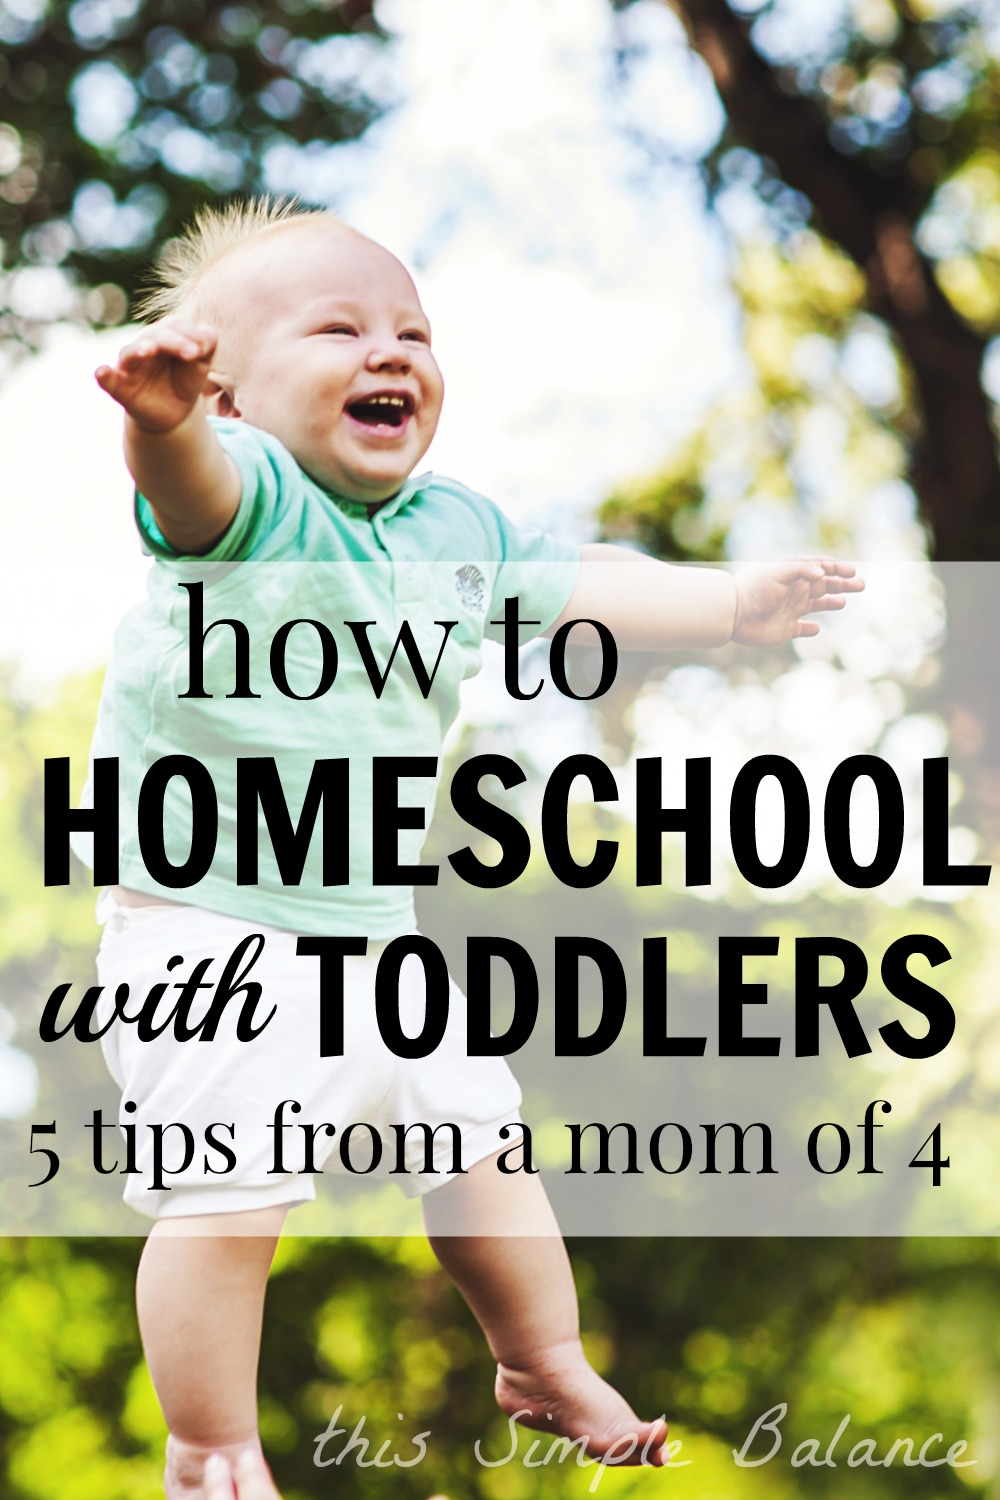 how to homeschool with toddlers, how to homeschool with babies, homeschooling with toddlers, homeschooling with babies